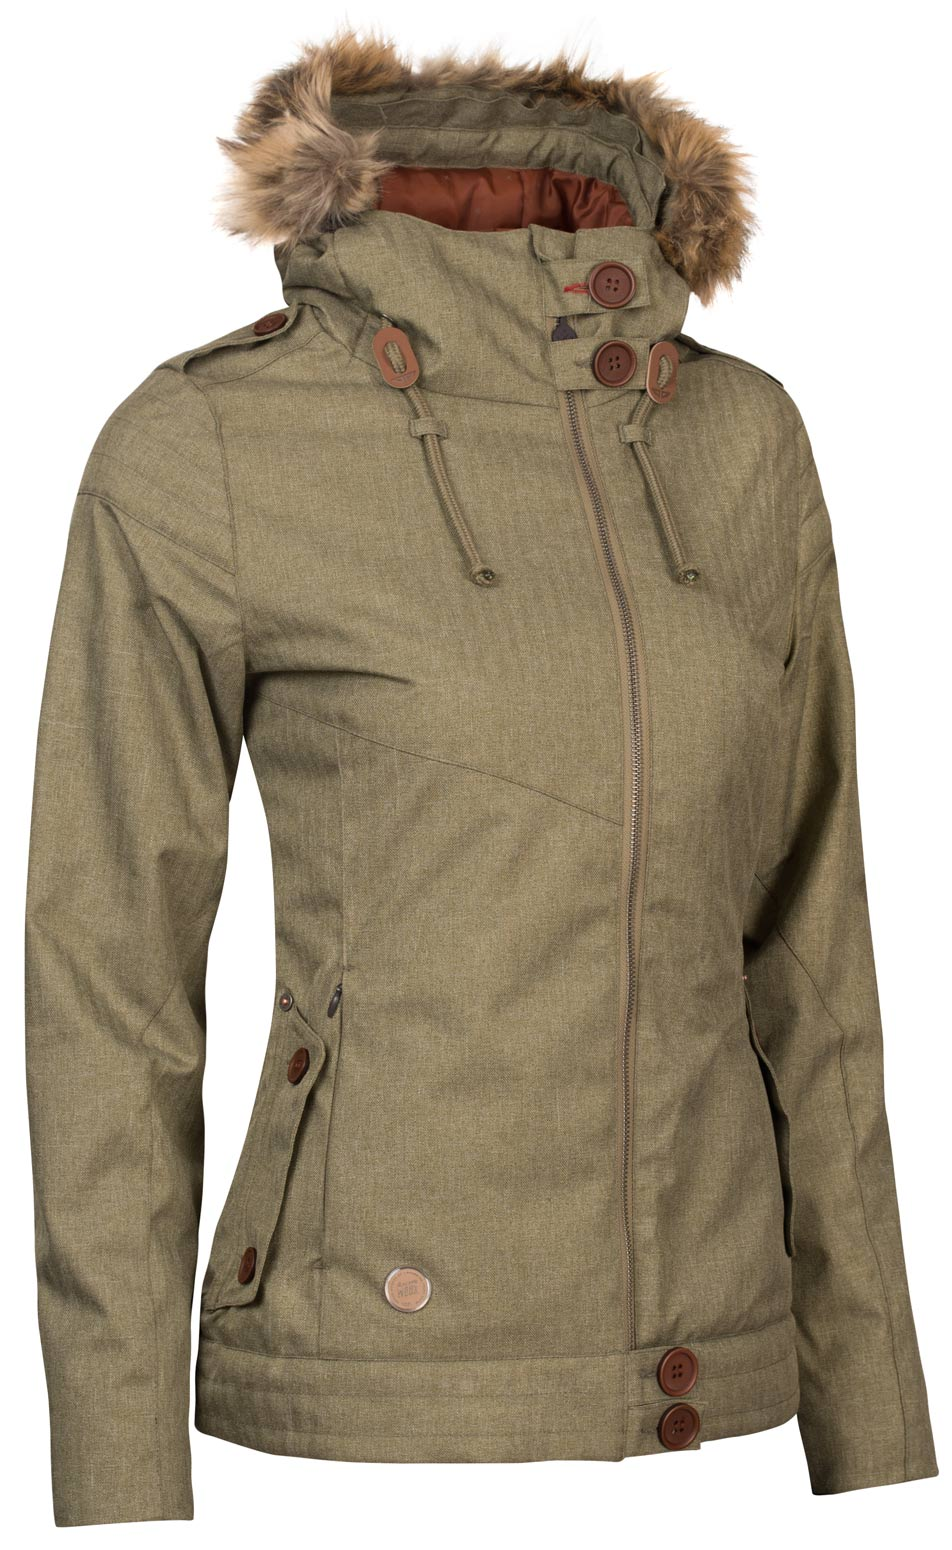 Women's winter jacket WOOX Pinna